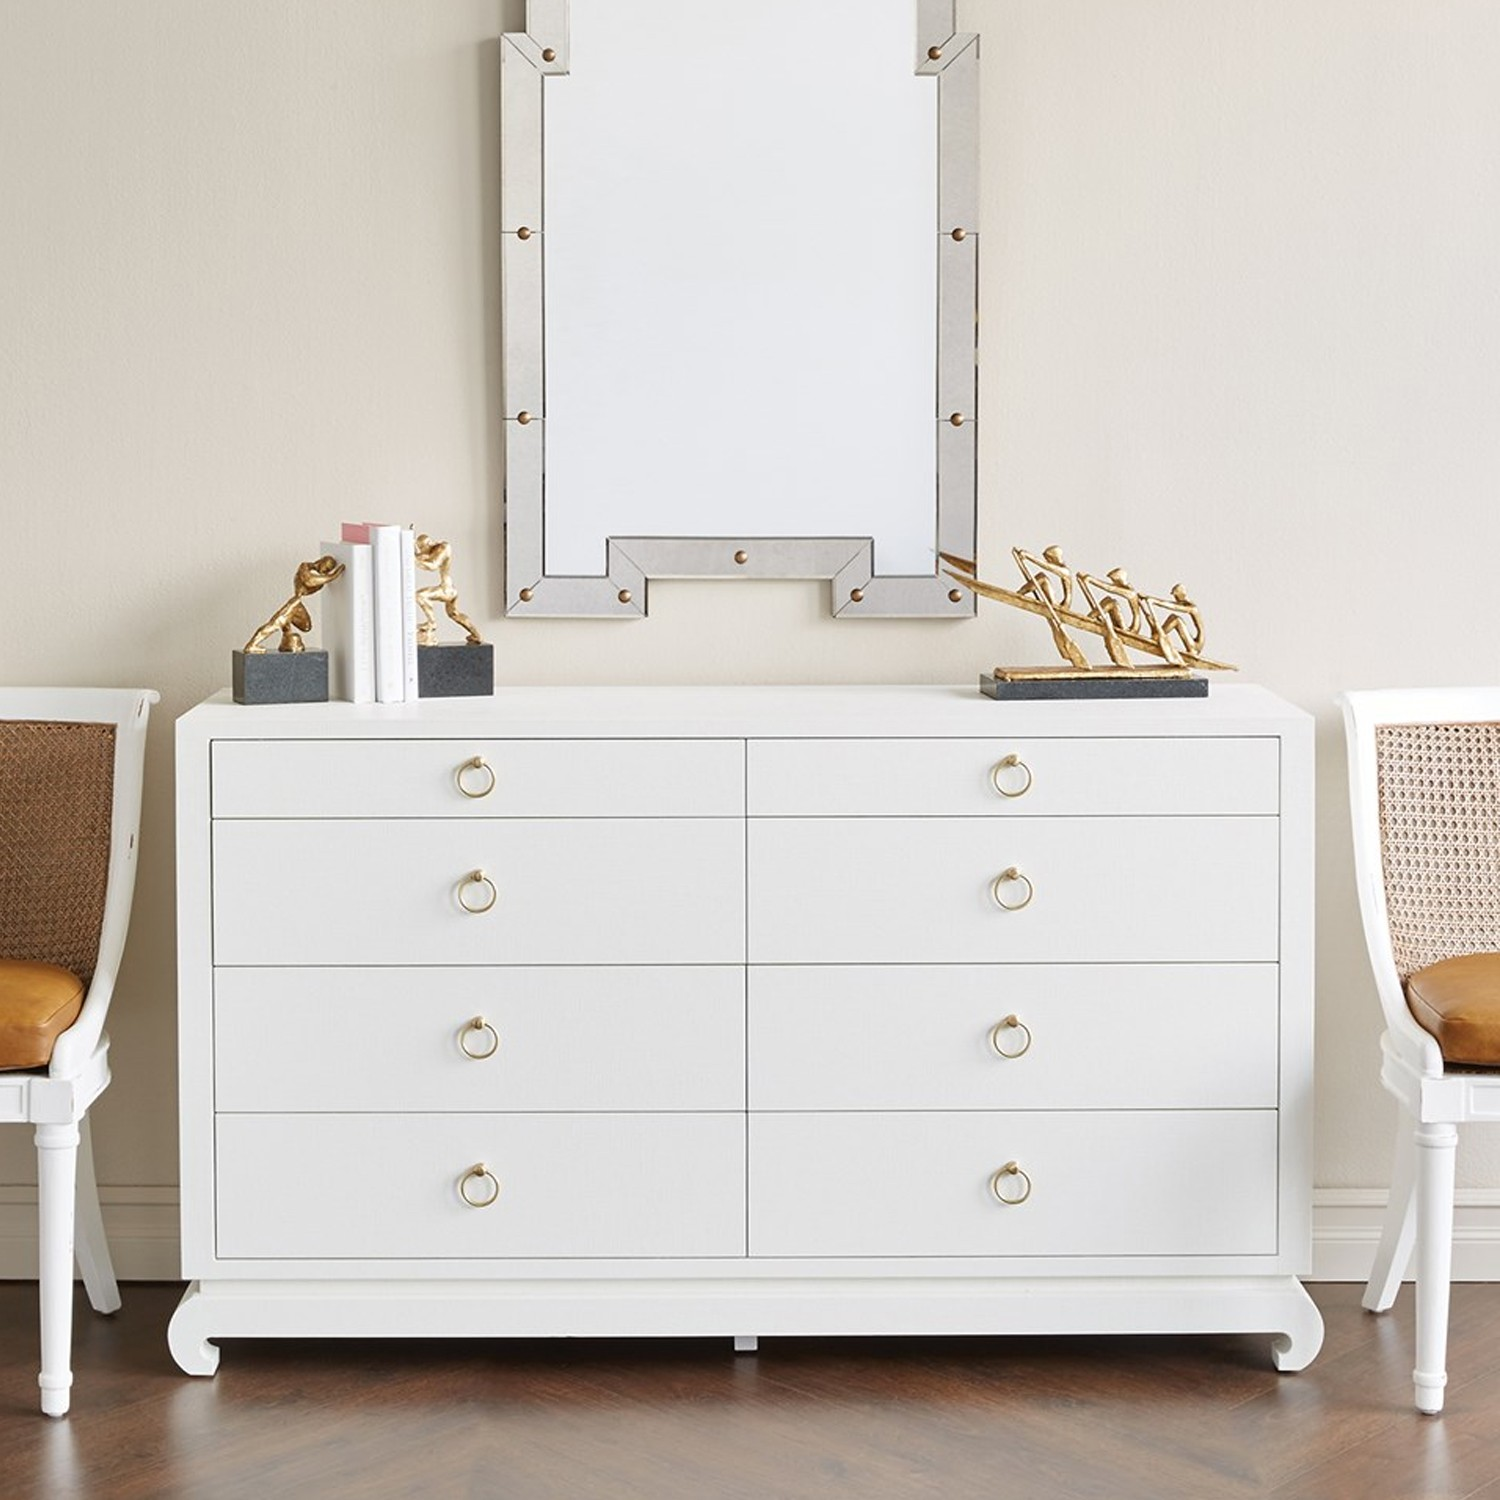 Picture of: White Tall Dresser Vanity